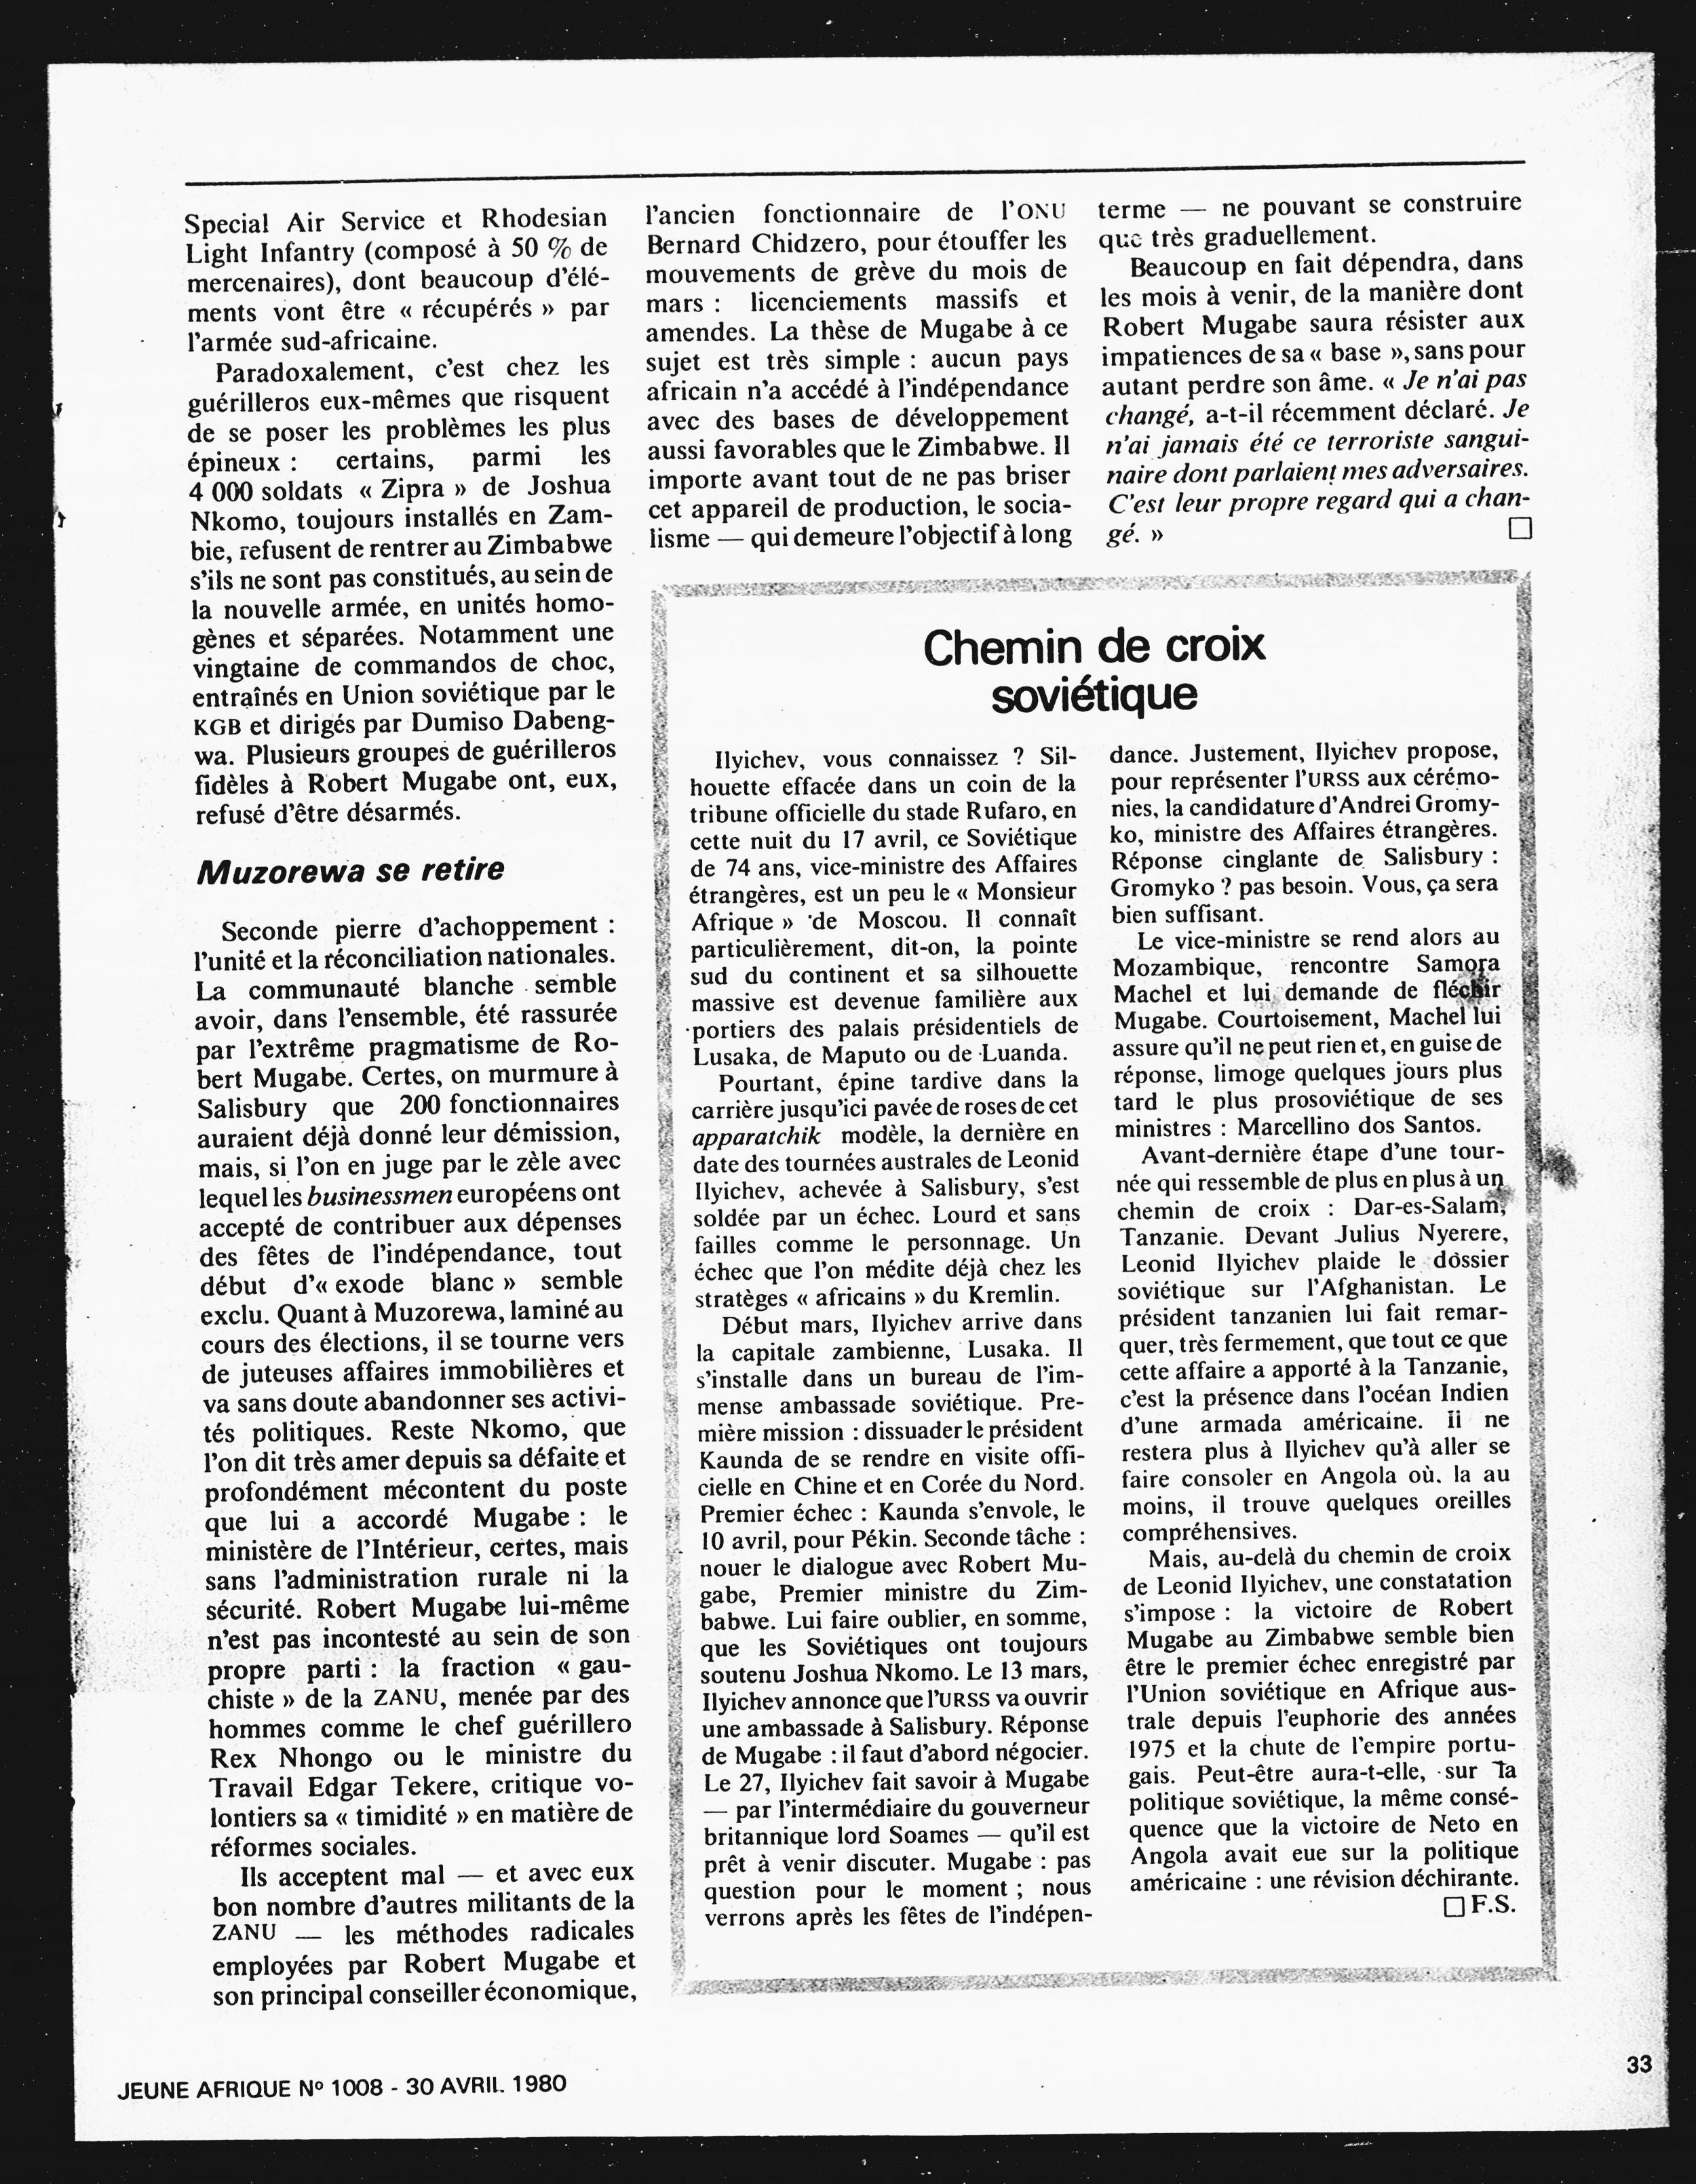 Article daté du 30 avril 1980